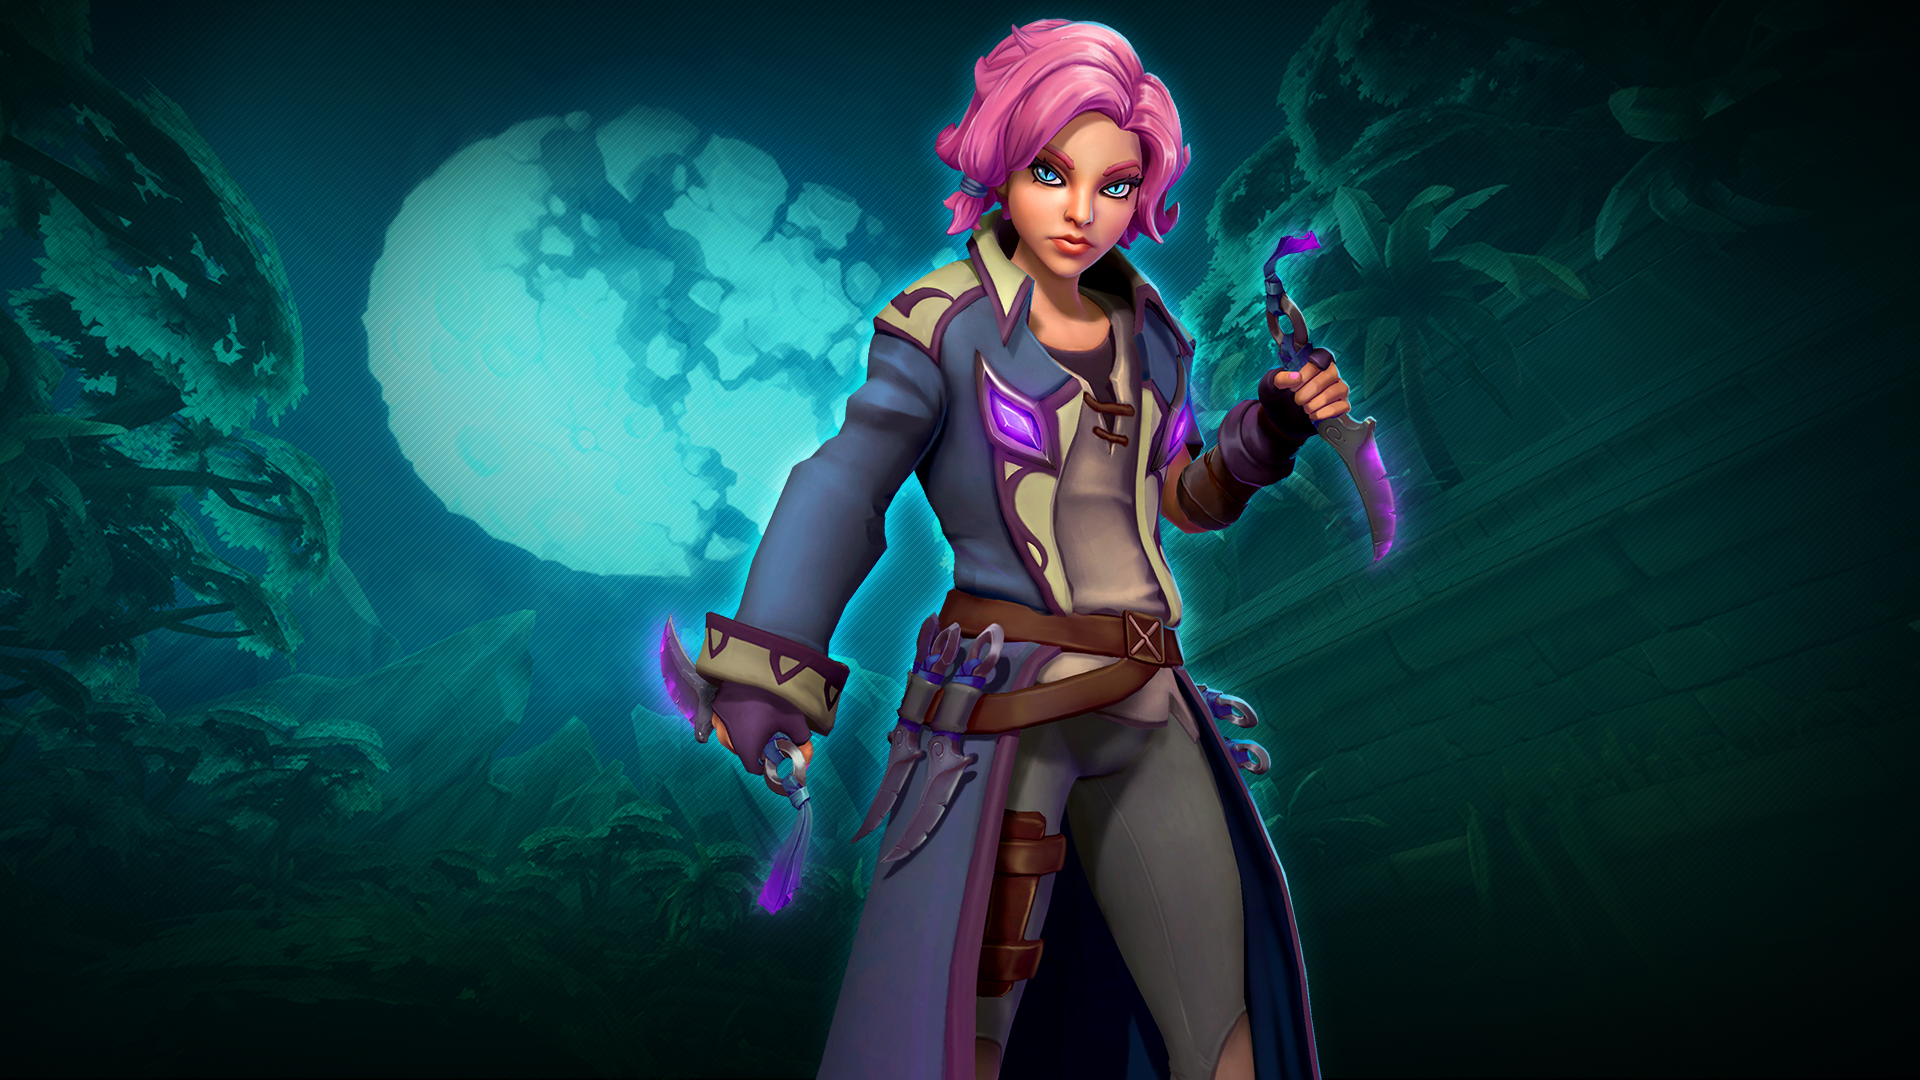 The champion Maeve. The best Paladins champions to play in each class